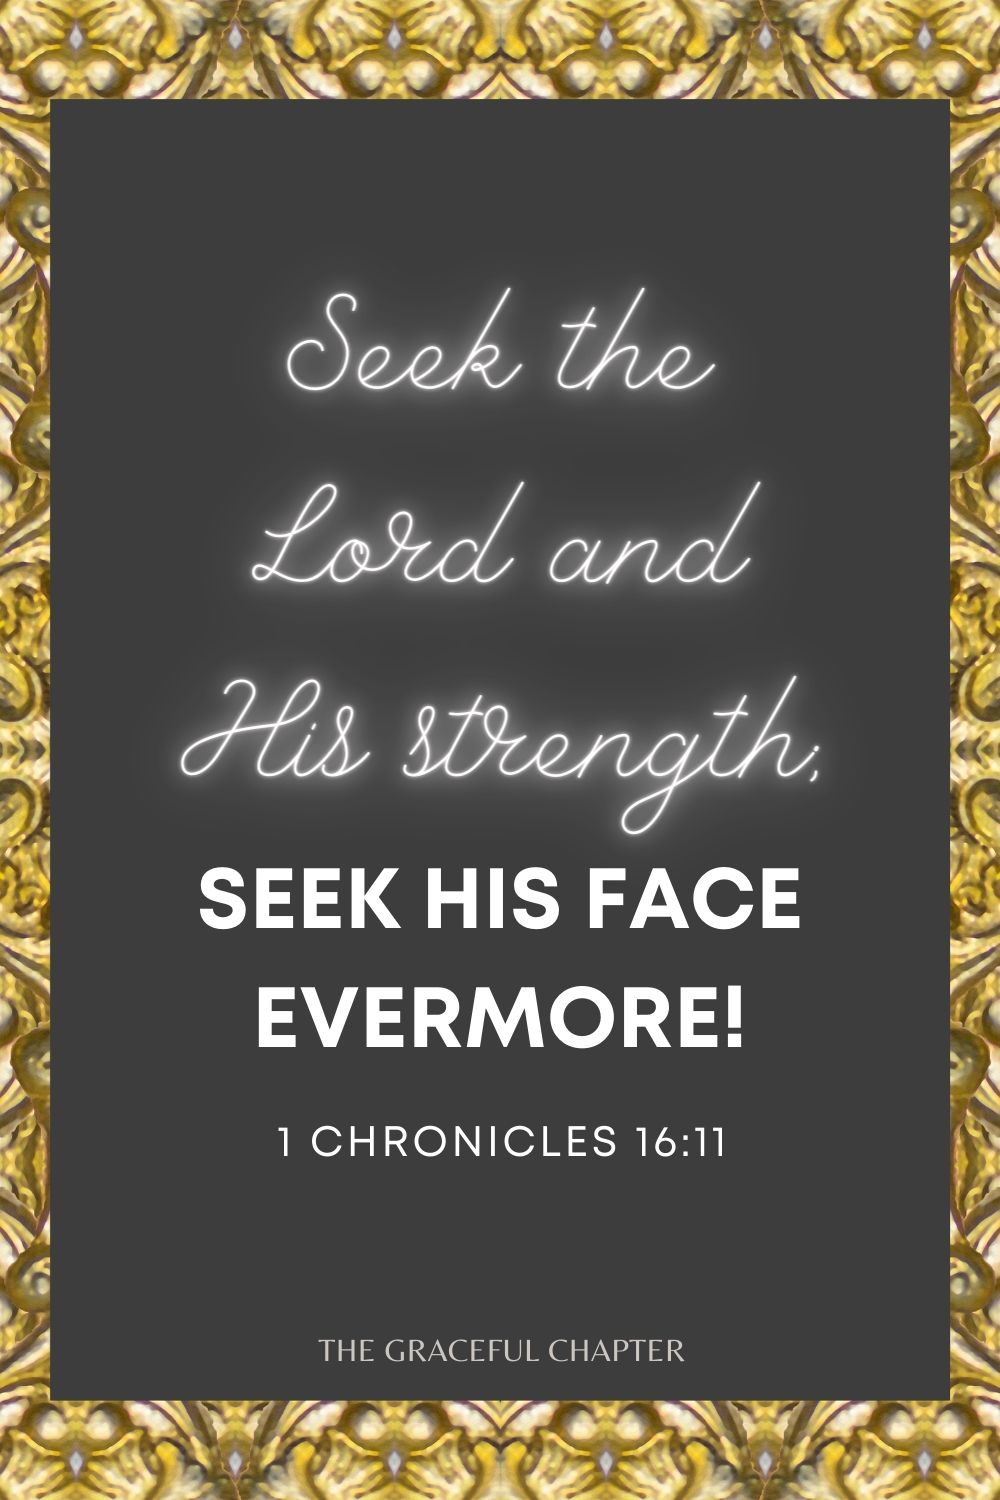 Seek the Lord and His strength; Seek His face evermore! 1 Chronicles 16:11